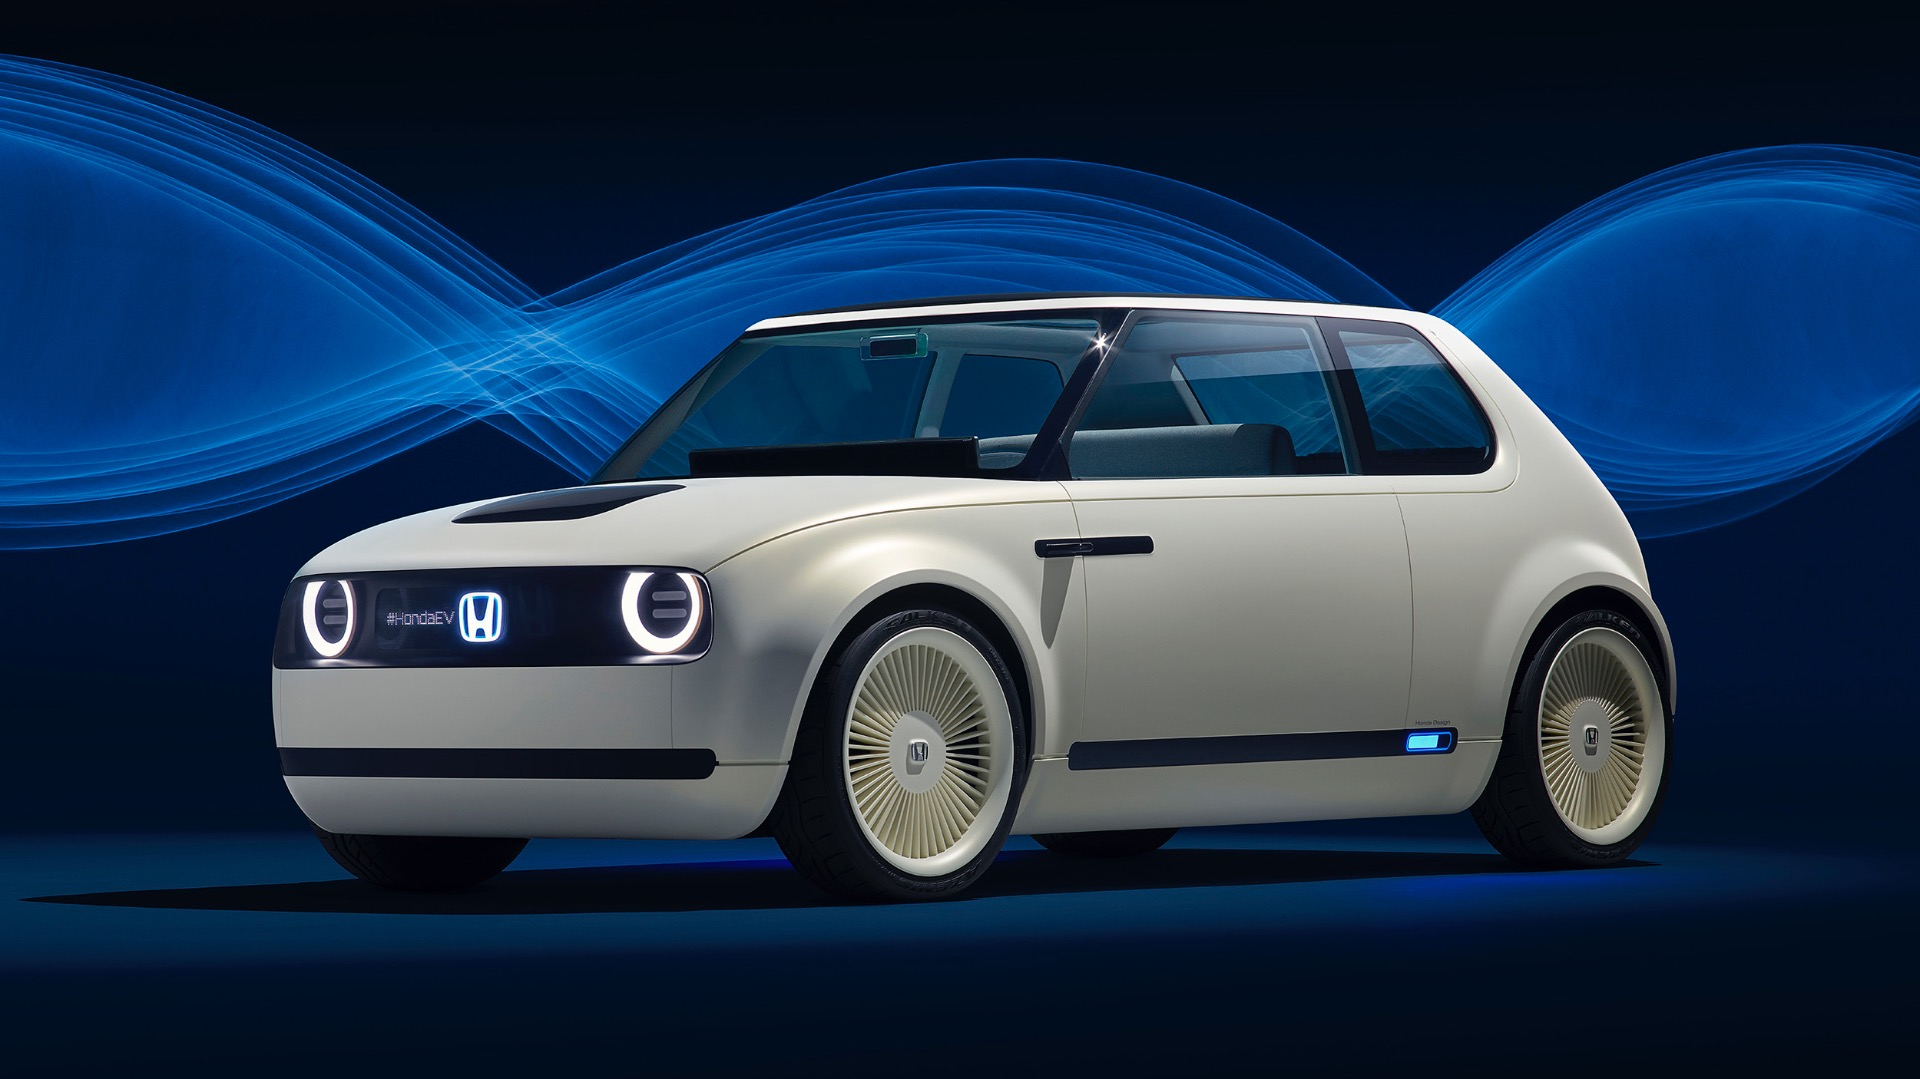 Honda Sports EV Concept Is An Electrifying Sports Car For A Connected Future